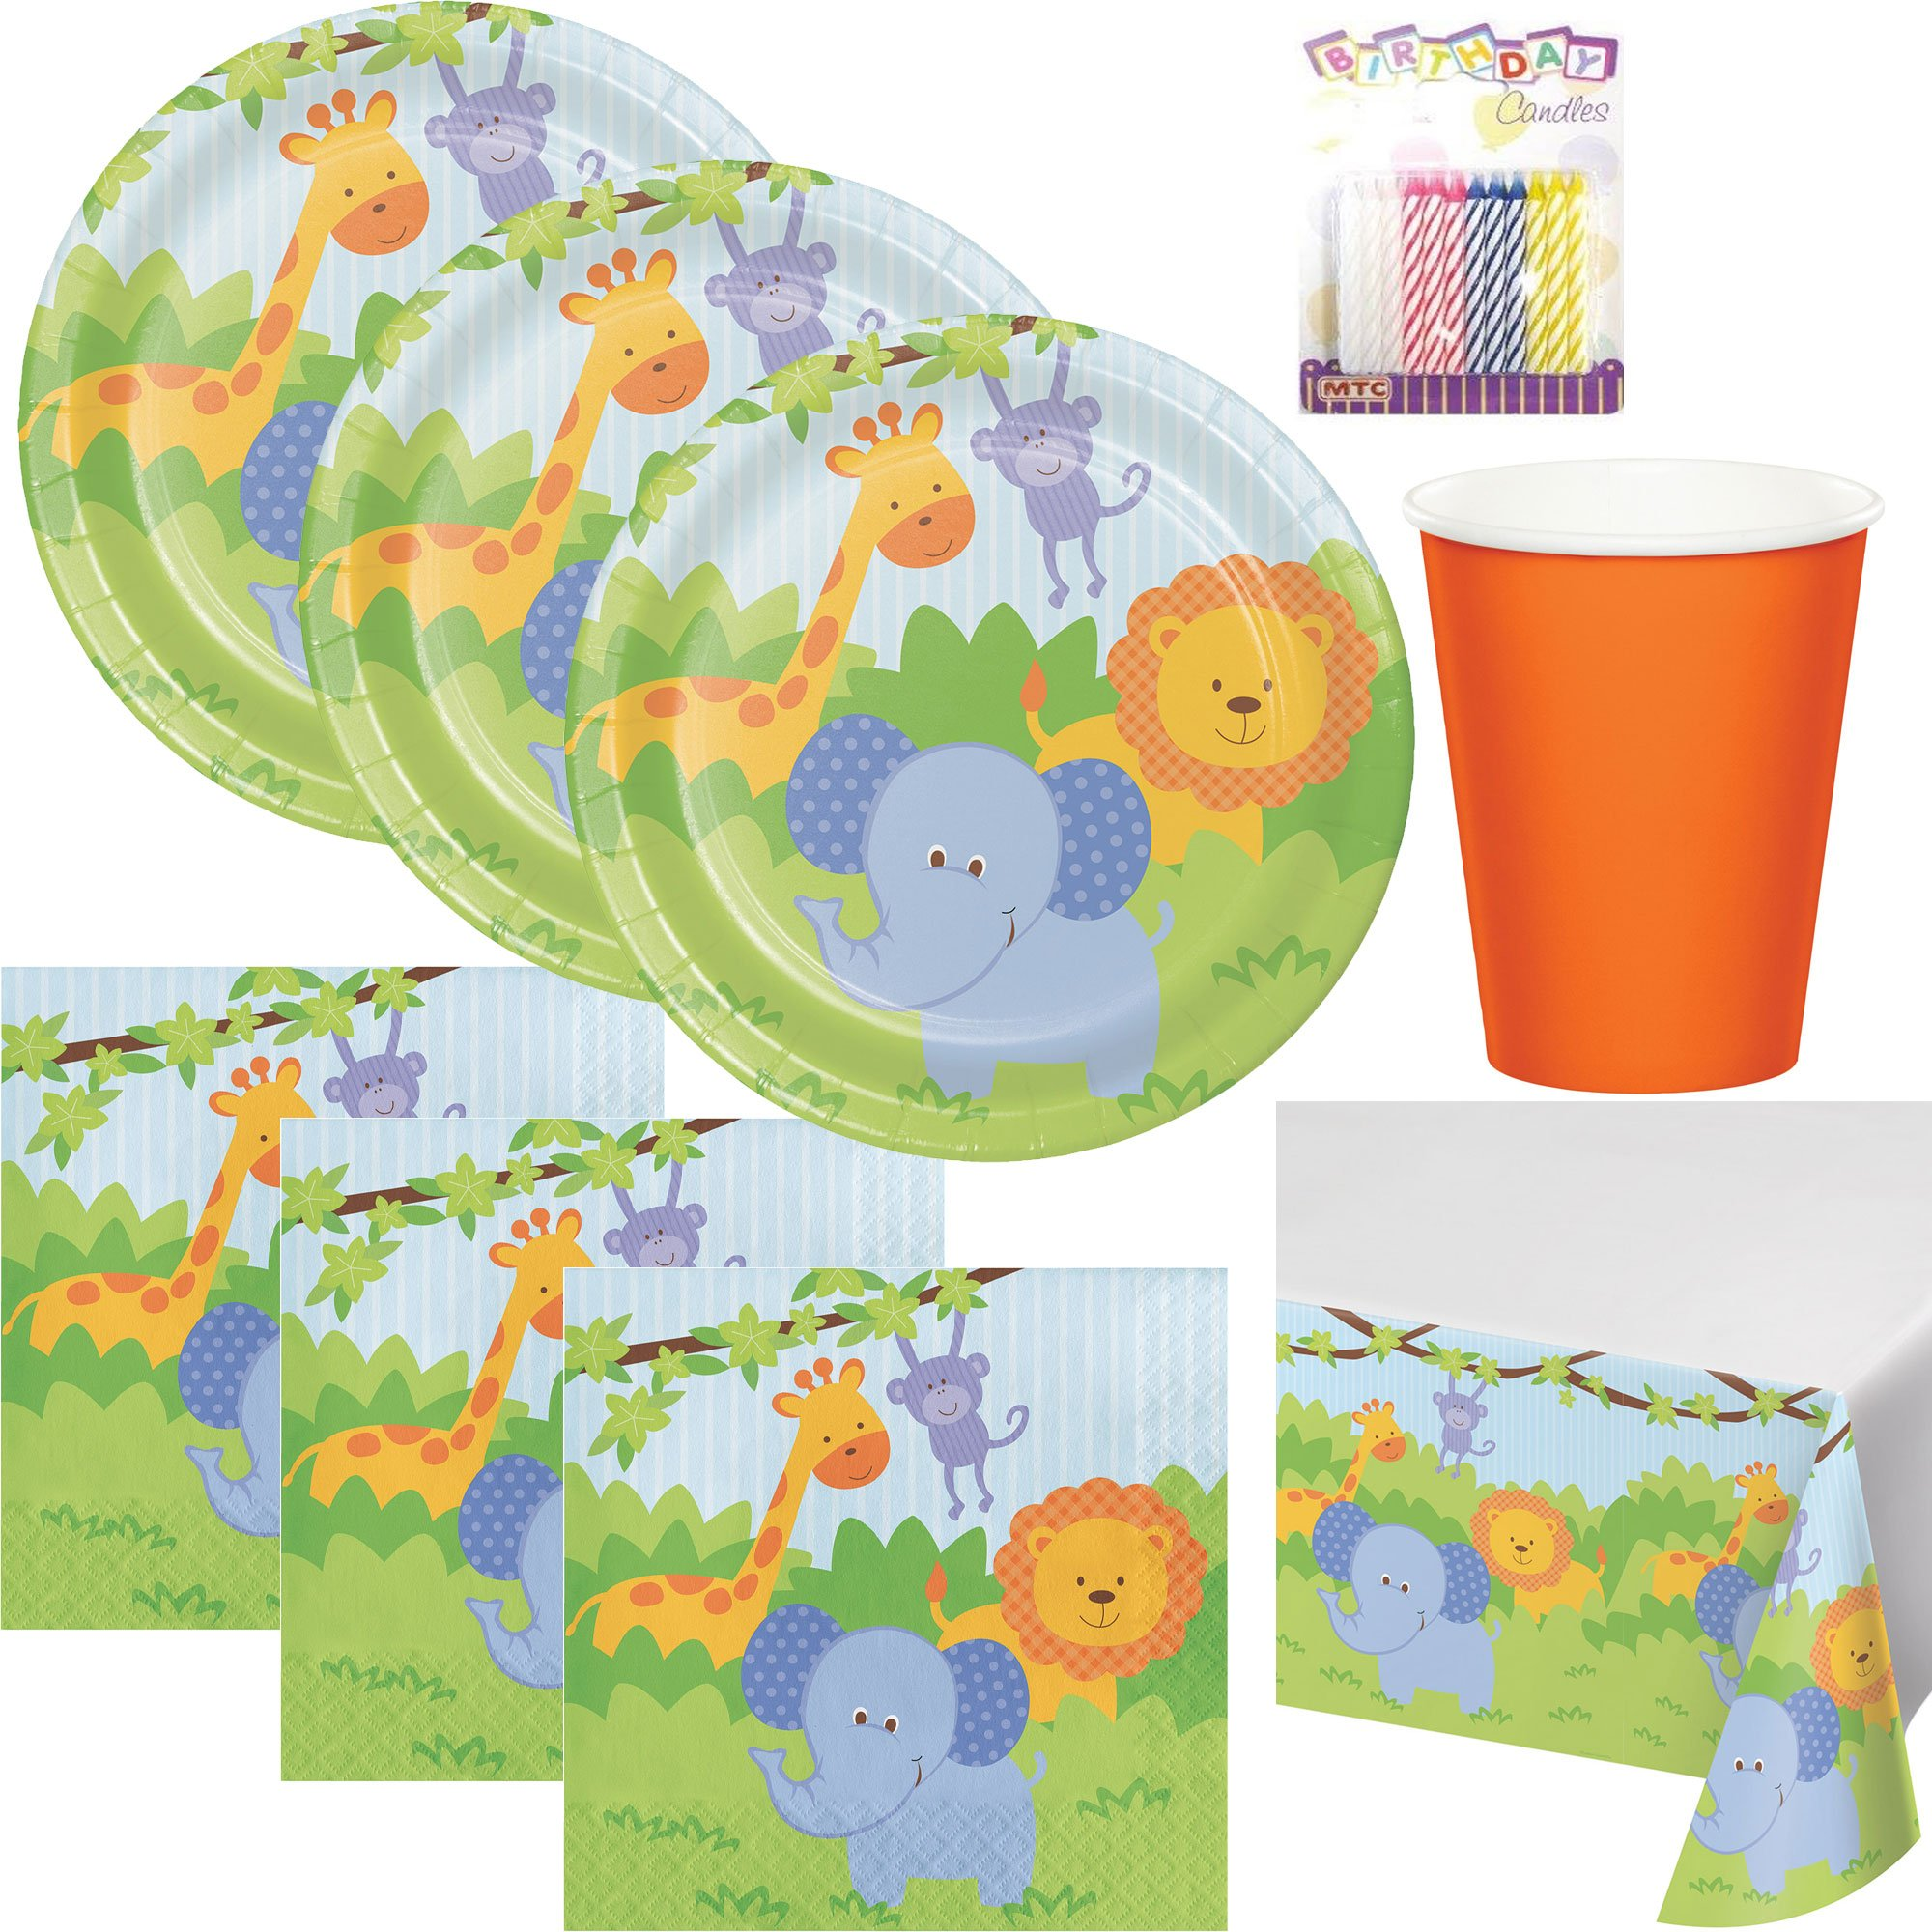 Forest Friends Birthday Theme 1st Party Supplies Pack (Serves-16) Dinner Plates, Luncheon Napkins, Cups, and Table Cover - First Zoo Party Supply Tableware Set Kit Includes Birthday Candles